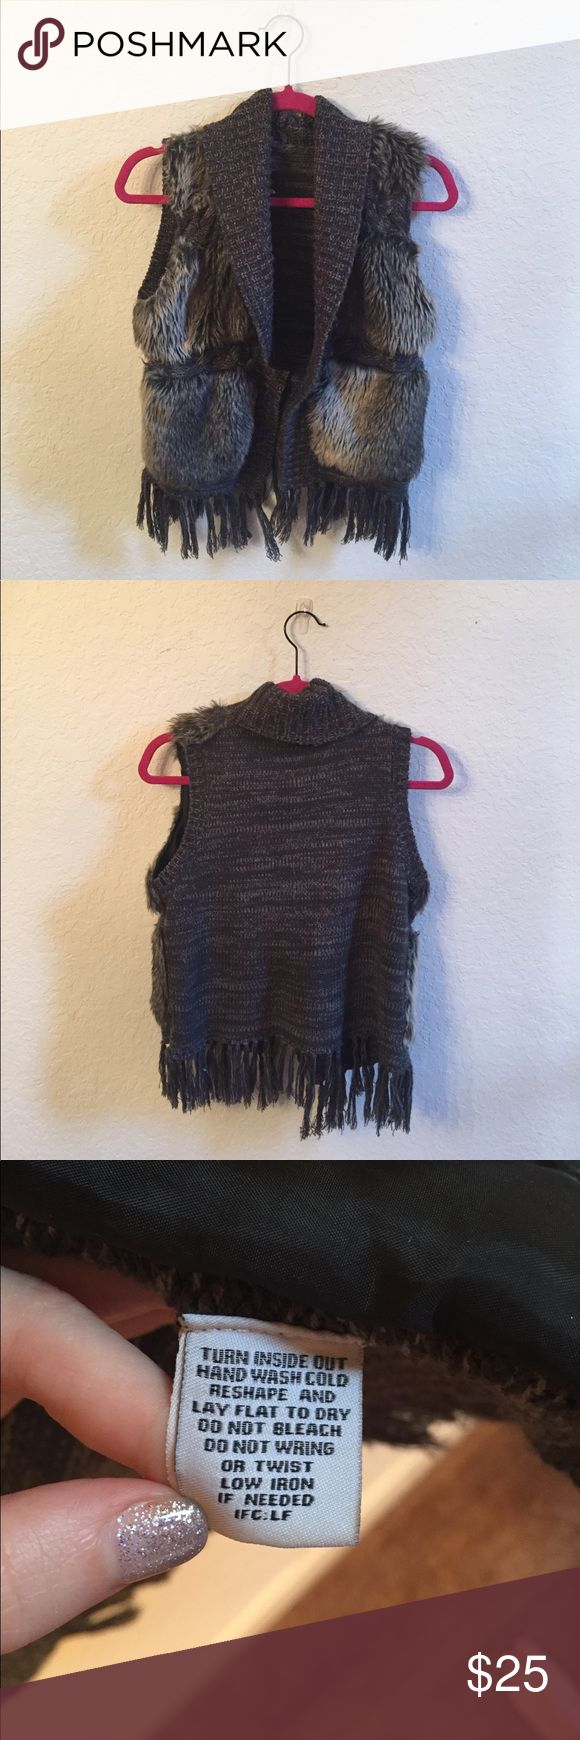 Fur vest Gray with fringe crochet/knit Fur vest with fringe Gray!! Super cute!! Only tag is shown. Perfect for Fall and winter to pair with jeans or a long sleeve undershirt. Fringe adds a fun accent. :) Jackets & Coats Vests